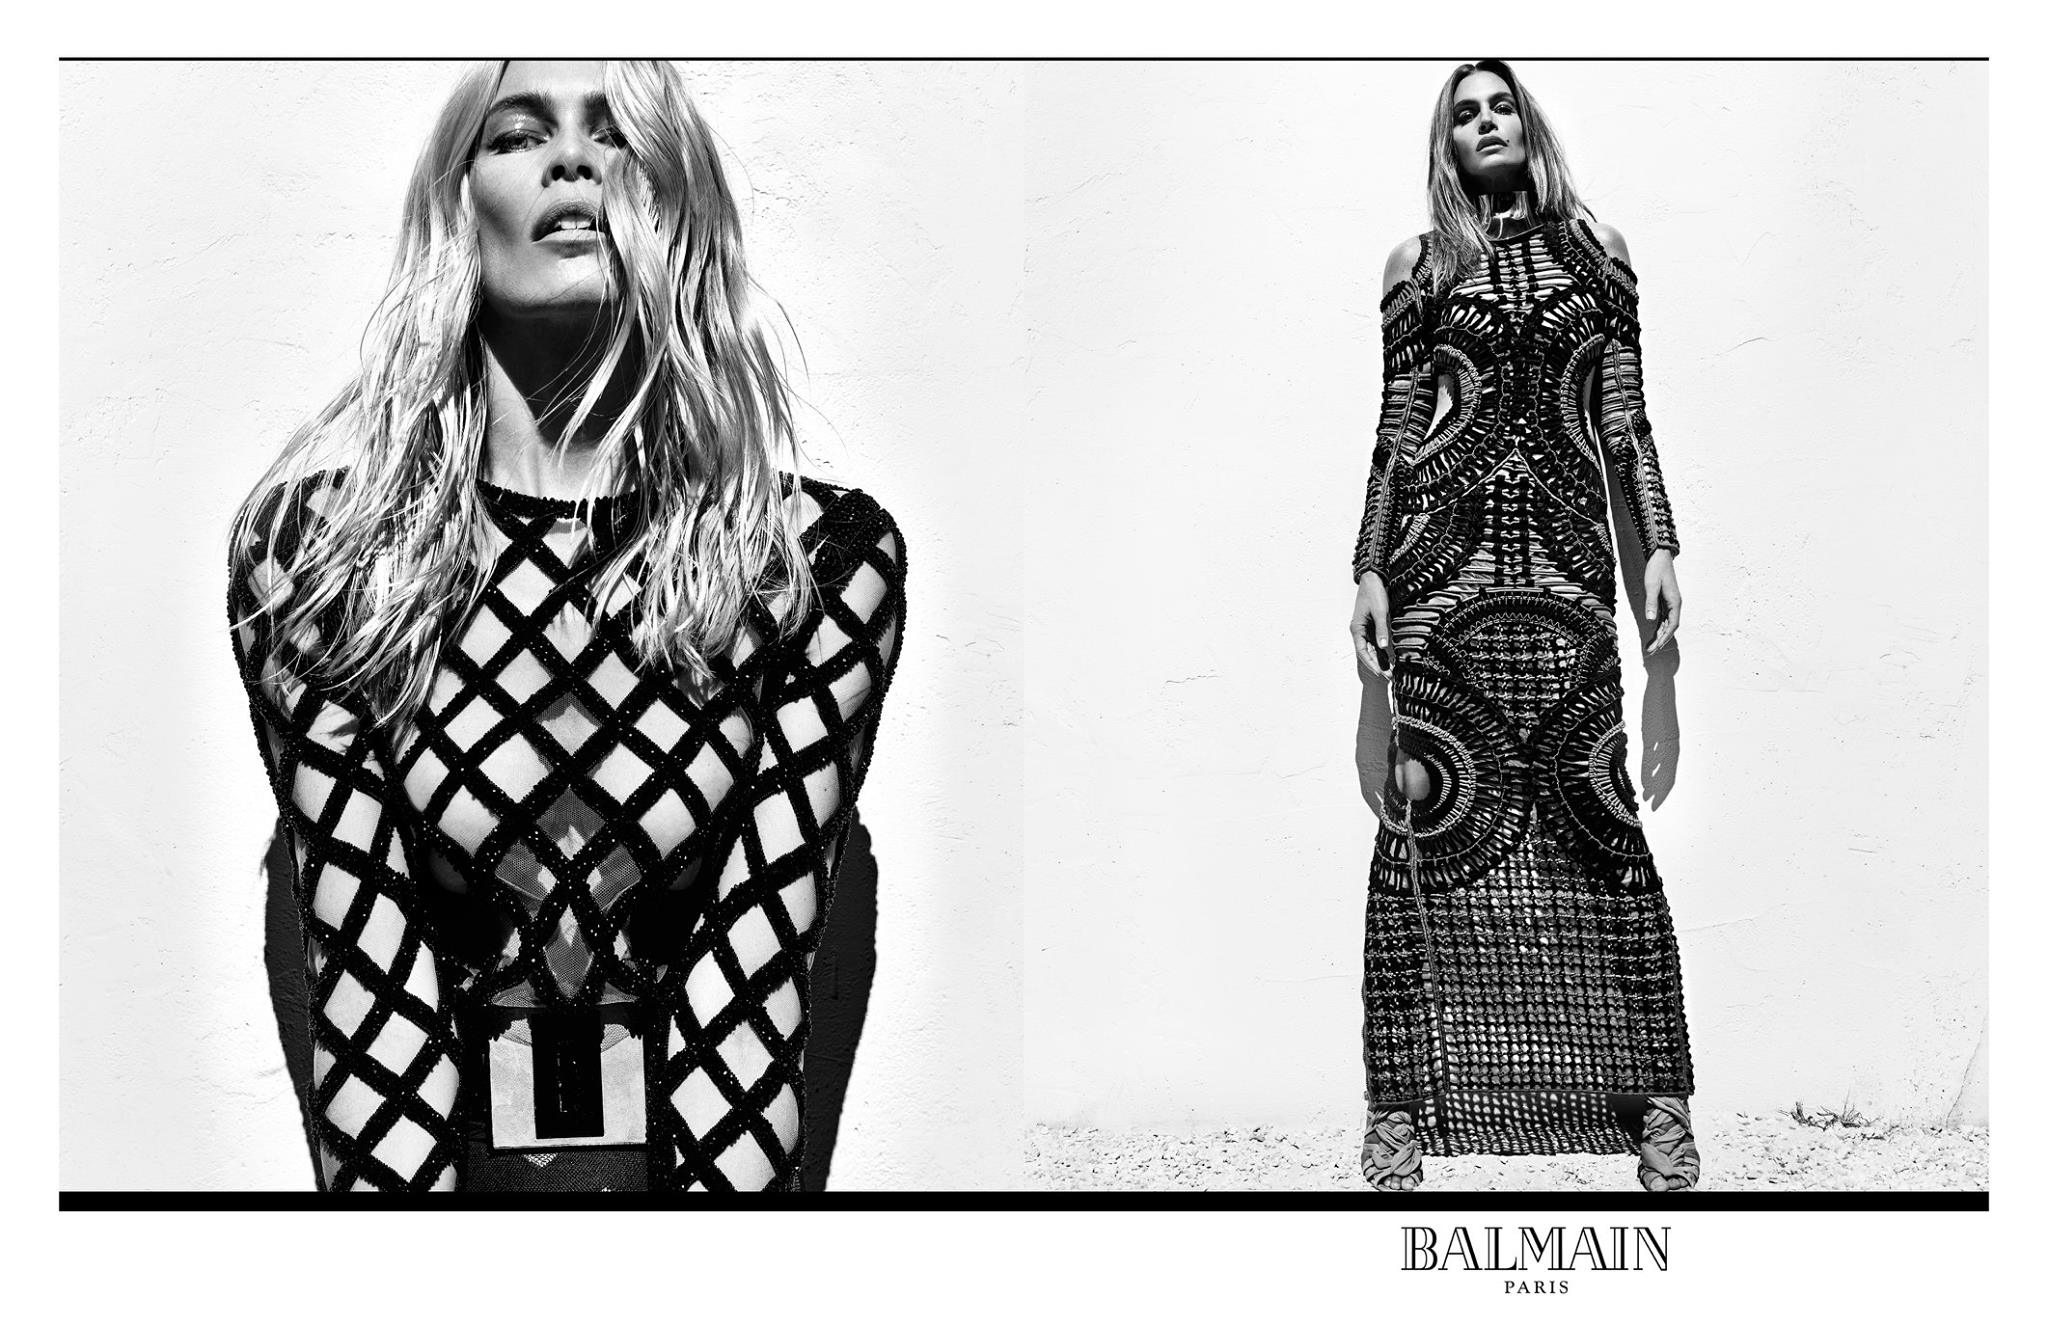 THE NEW BALMAIN SQUAD